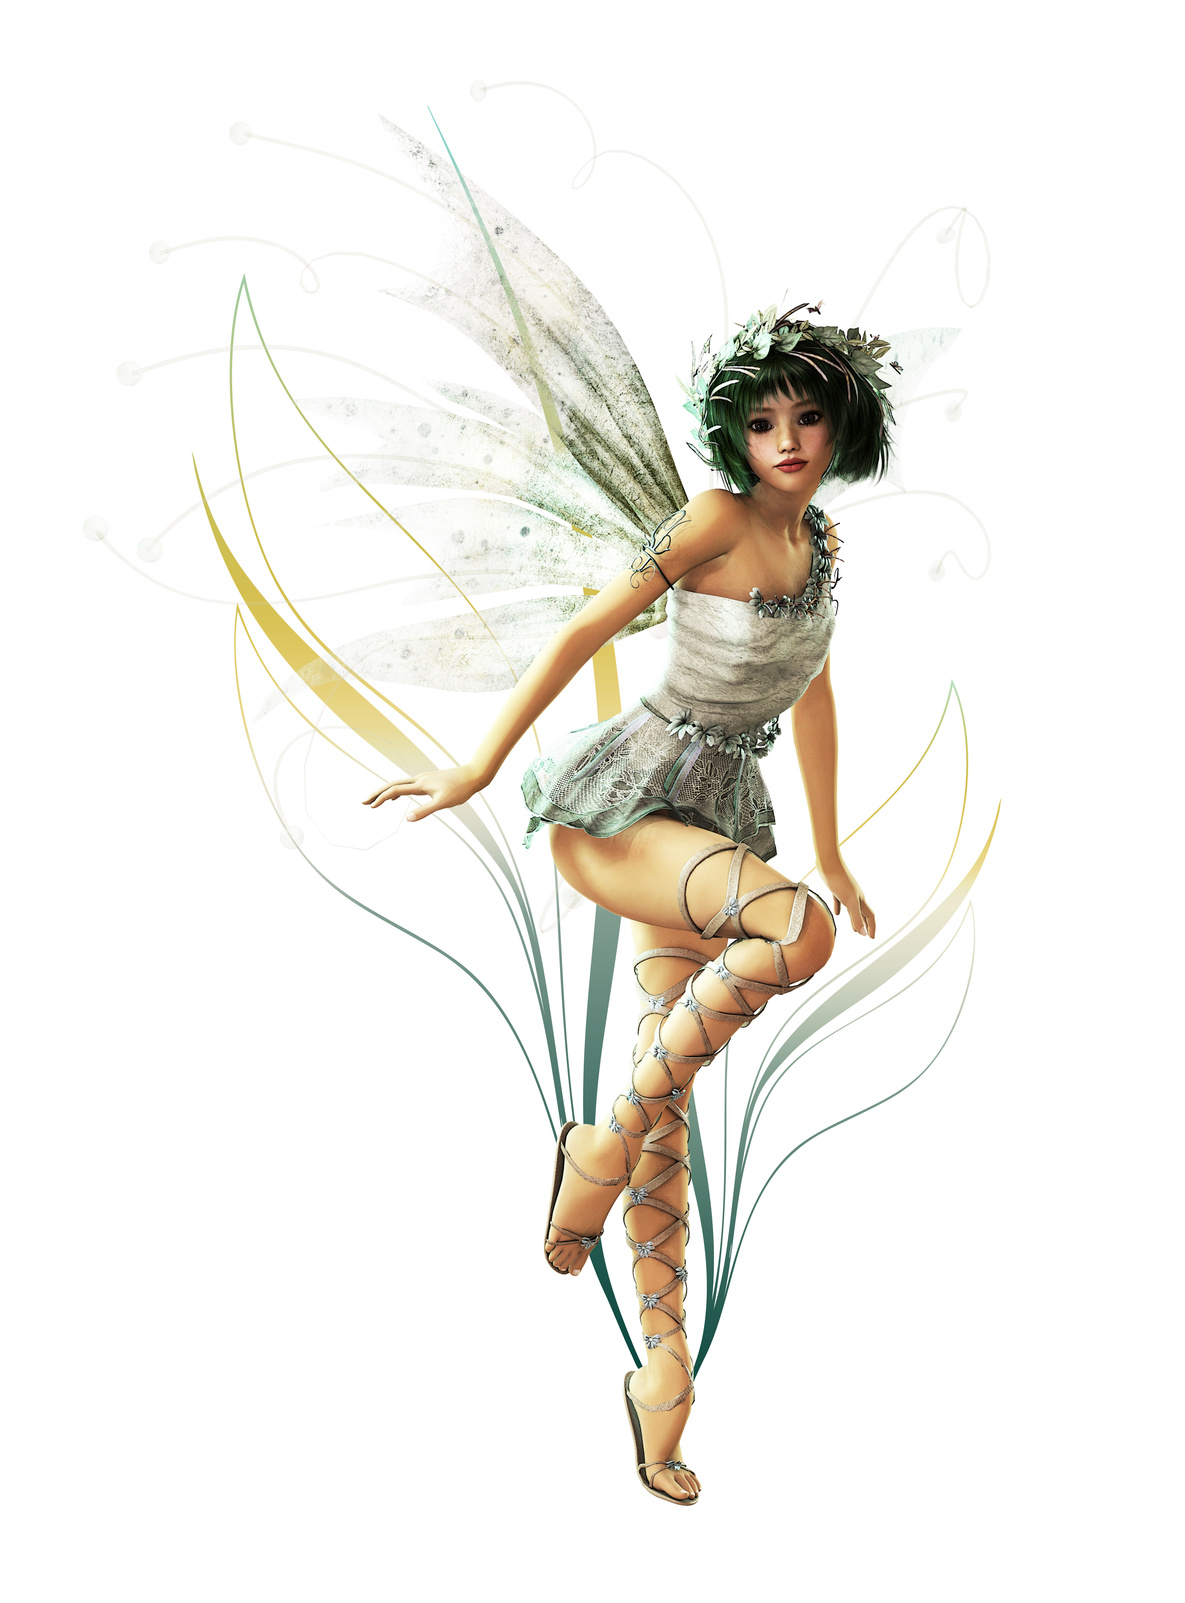 A charming fairy with wreath and wings